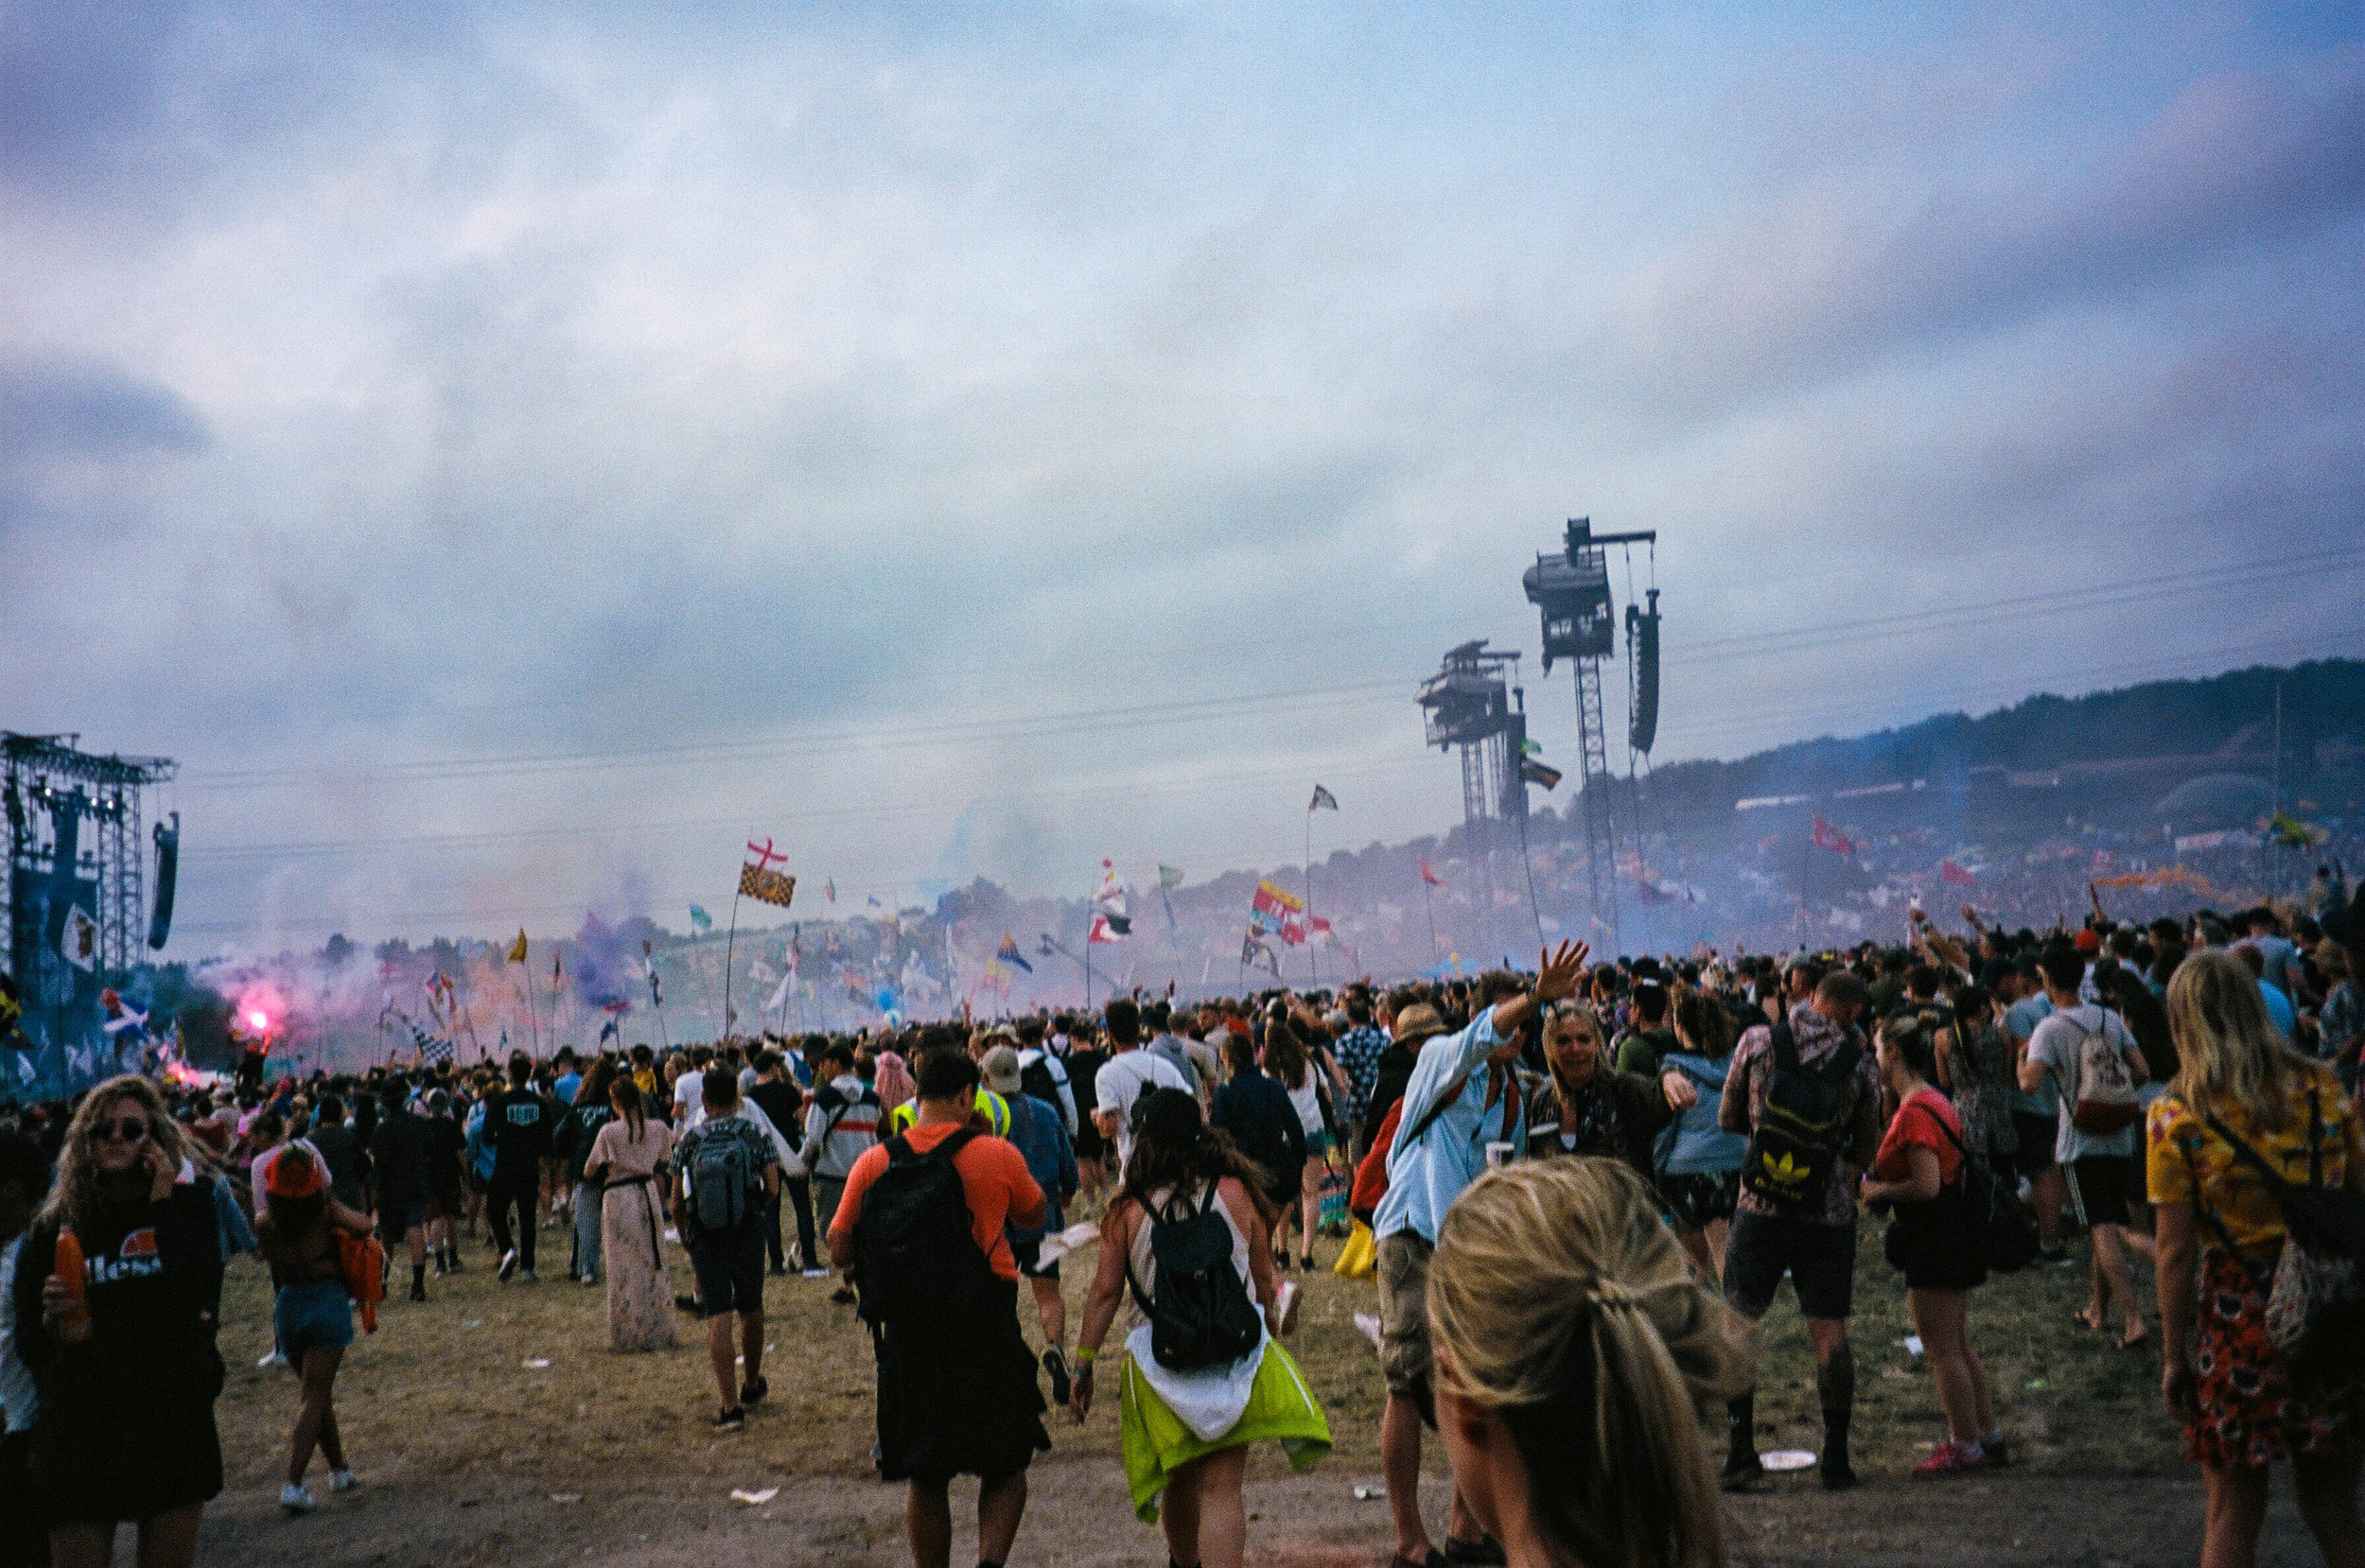 Glastonbury, England June 2019